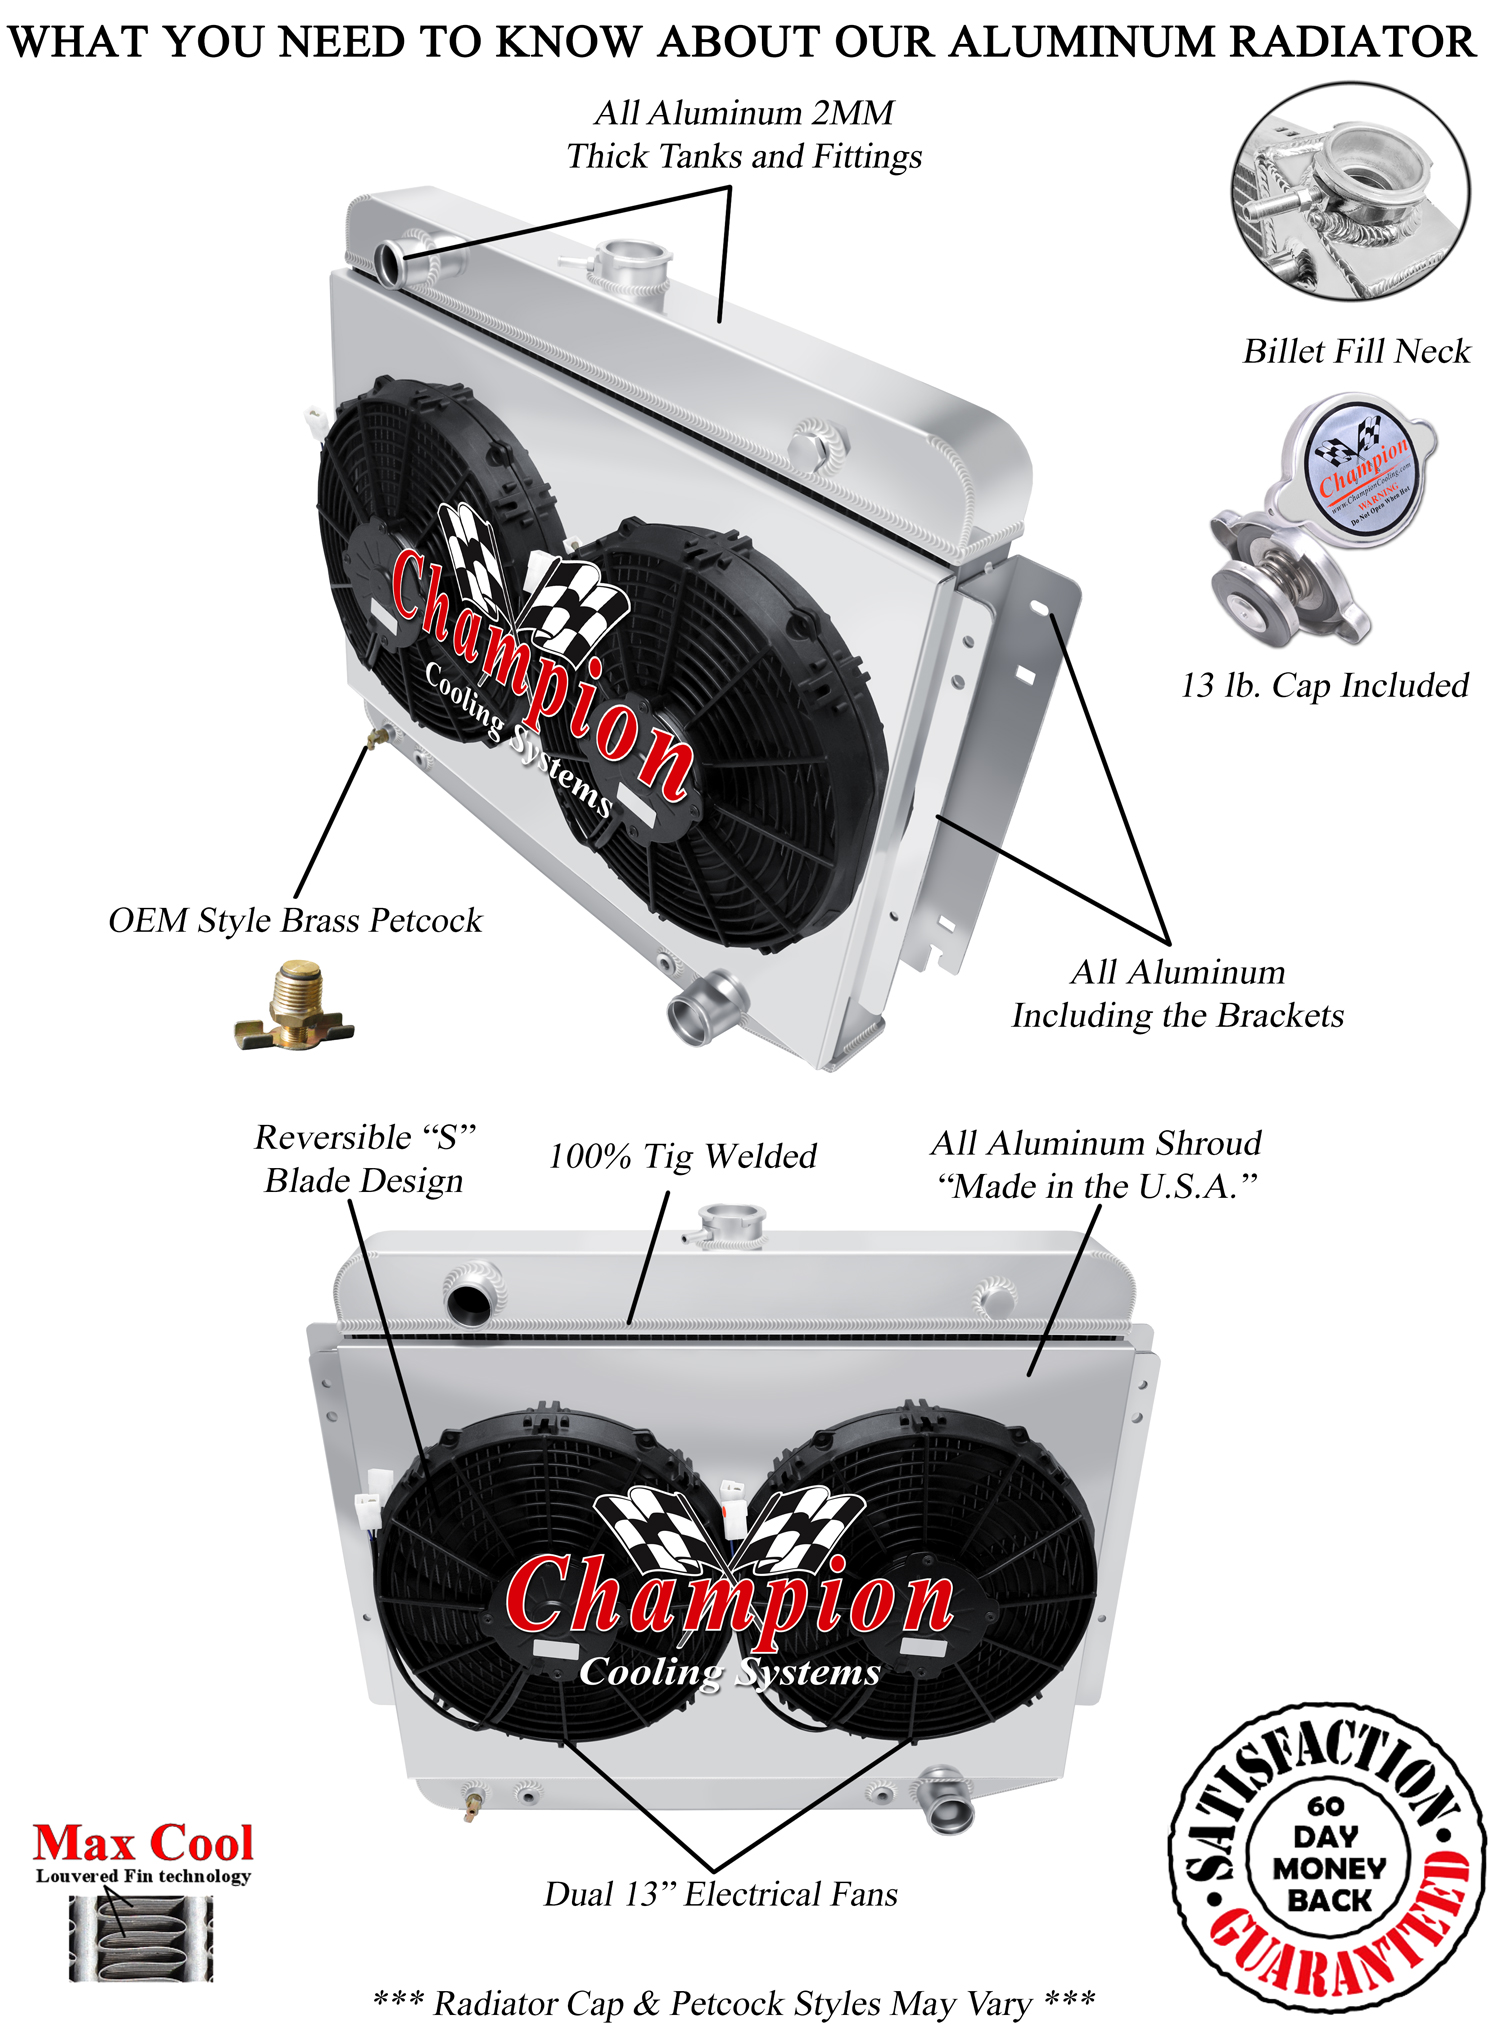 https://www.championcooling.com/photos/Photos%20White/With%20Fans/W-Shroud/889/889_2fs_d_w.jpg